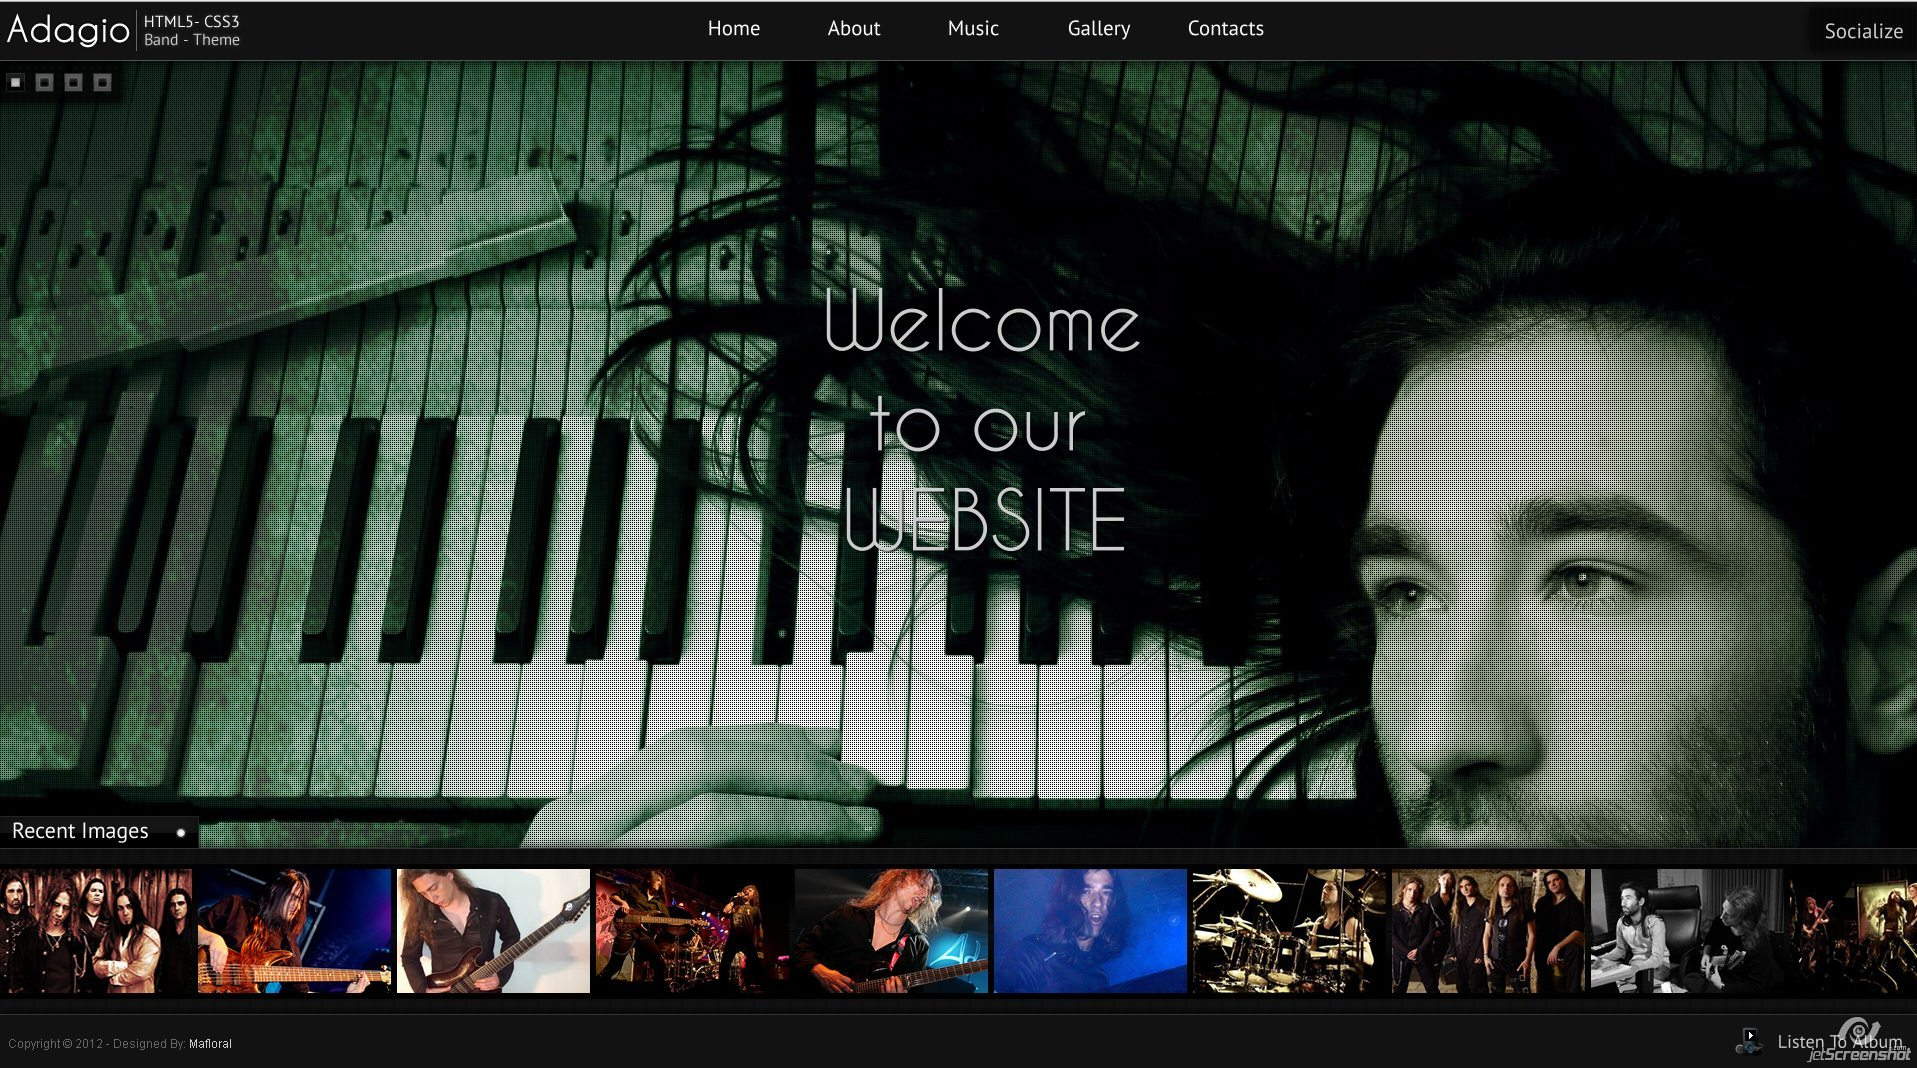 Adagio Musician Template - HTML5 - CSS3 - INdex Page  - Custom animated content, Background Slider, Superfish Drop Down menu. Many more awesome jQuery Gadgets.